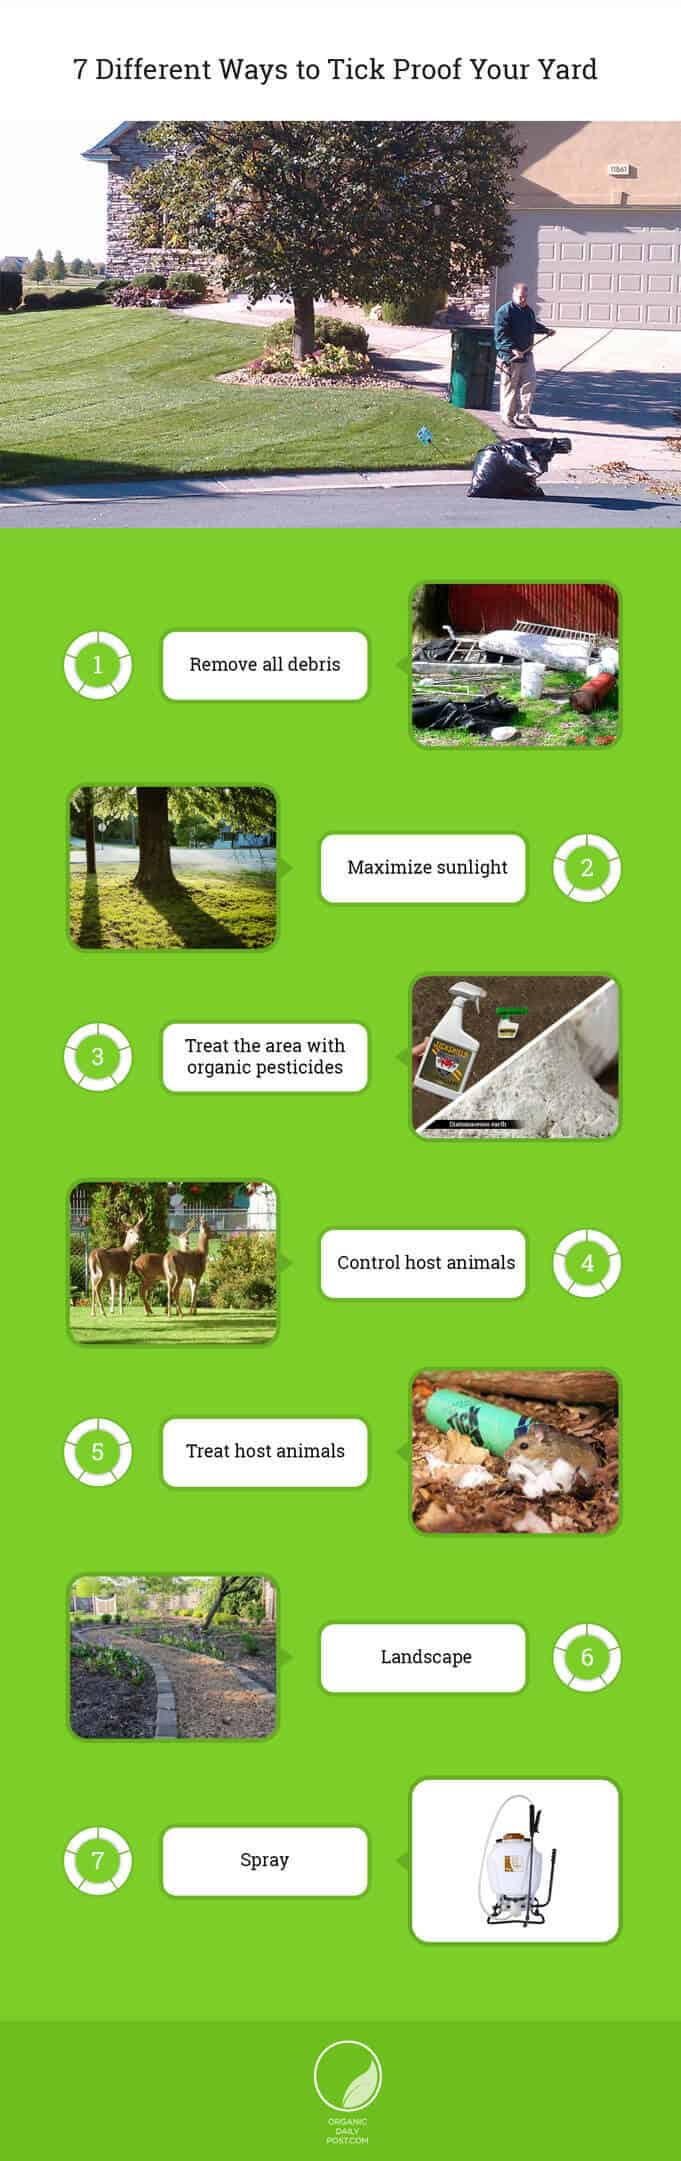 7 ways to kill ticks naturally in your yard